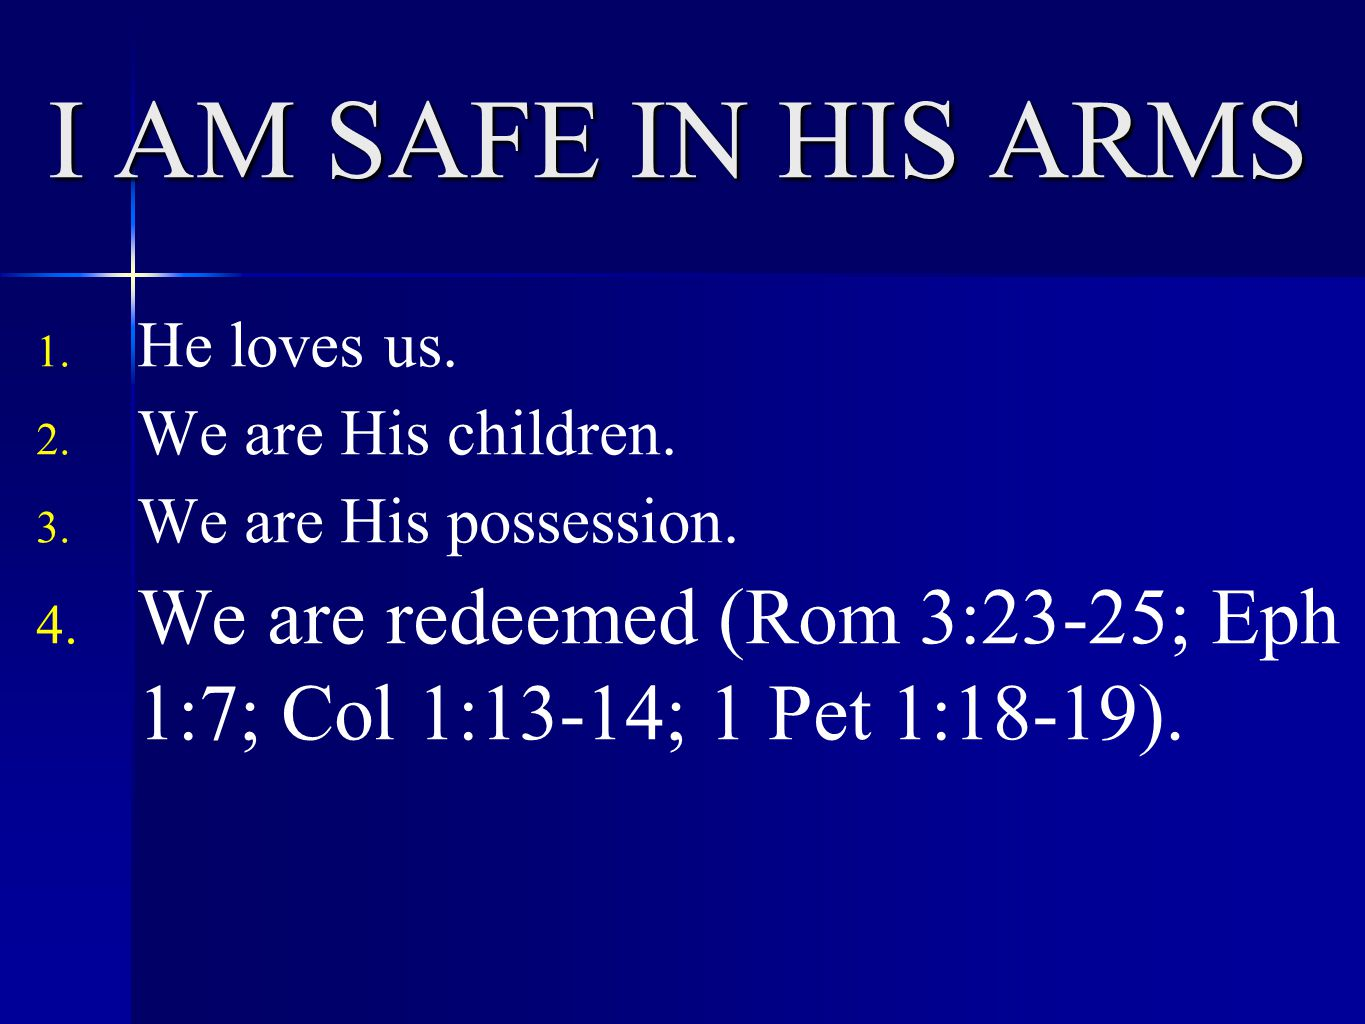 I AM SAFE IN HIS ARMS 1. He loves us. 2. We are His children. 3. We are His possession. 4. We are redeemed (Rom 3:23-25; Eph 1:7; Col 1:13-14; 1 Pet 1